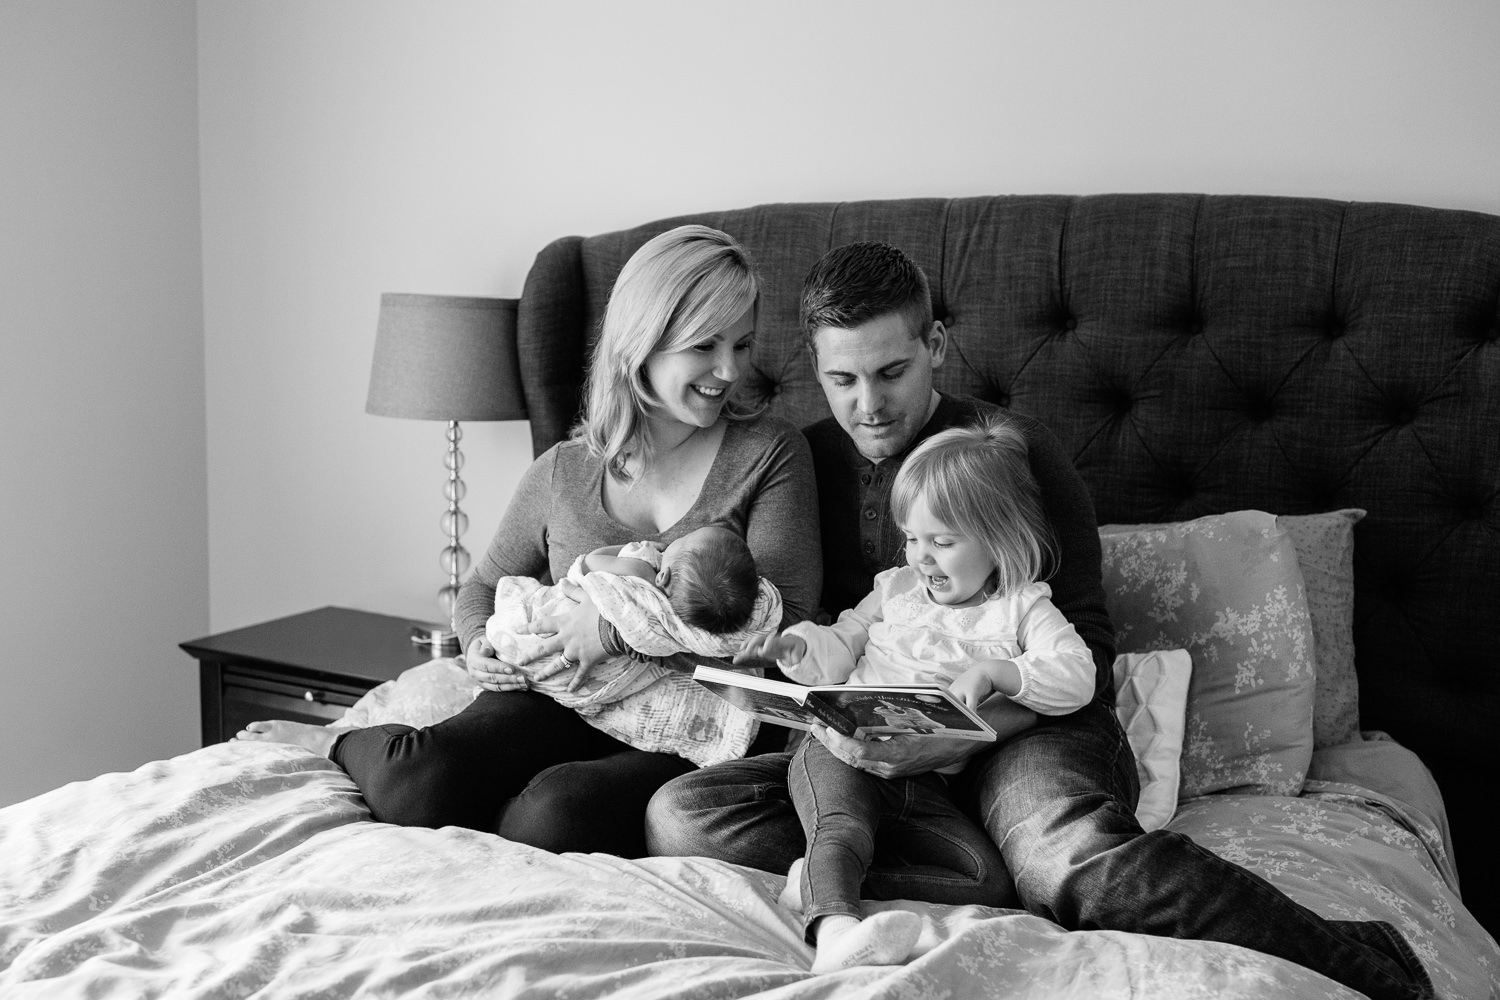 family of four sitting on bed, mom holding 2 week old baby boy 2 year old girl sitting on dad's lap reading story book - Stouffville Lifestyle Photography